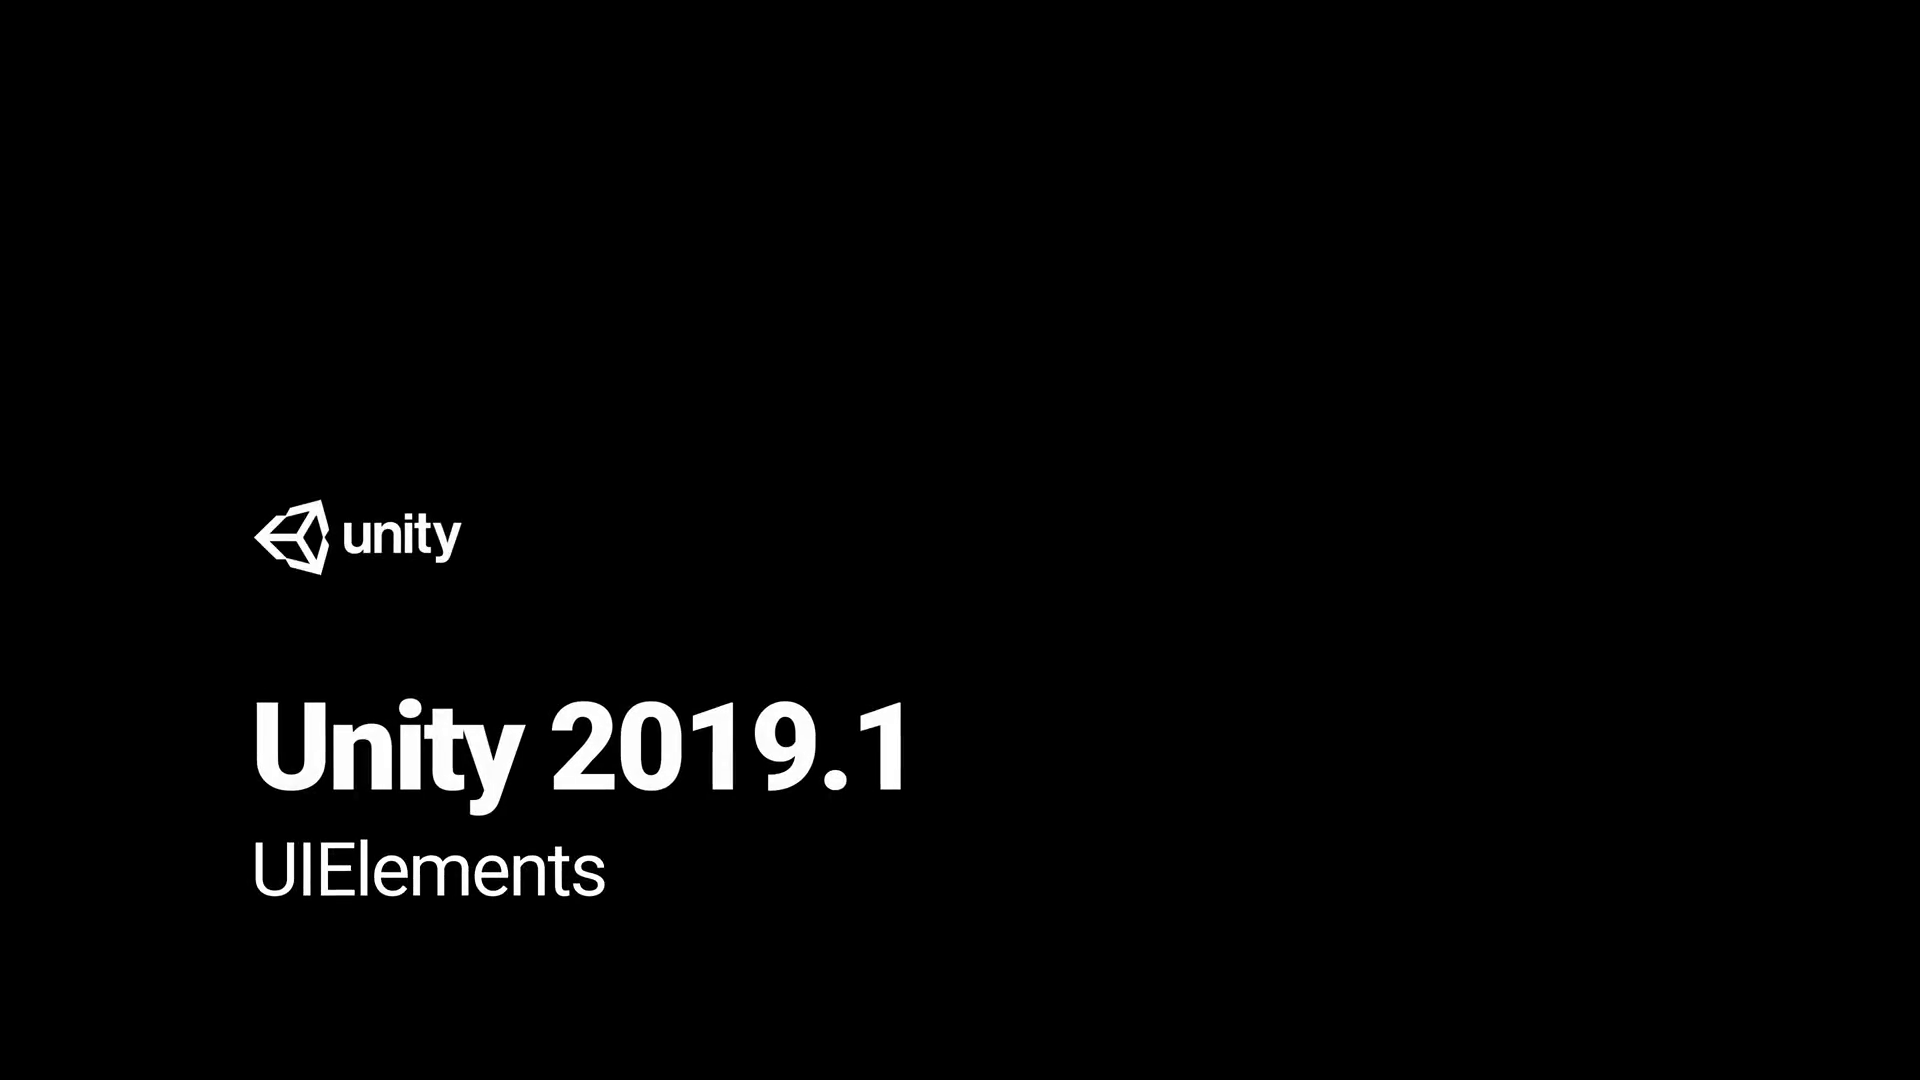 Unity 2019.1 - UIElements功能介绍